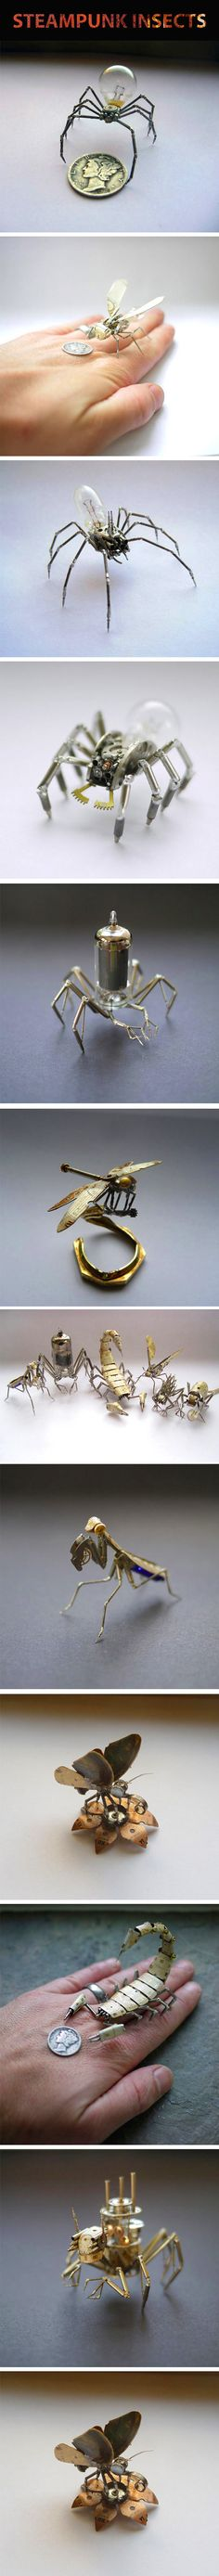 Tiny mechanical insects made out of watch parts…